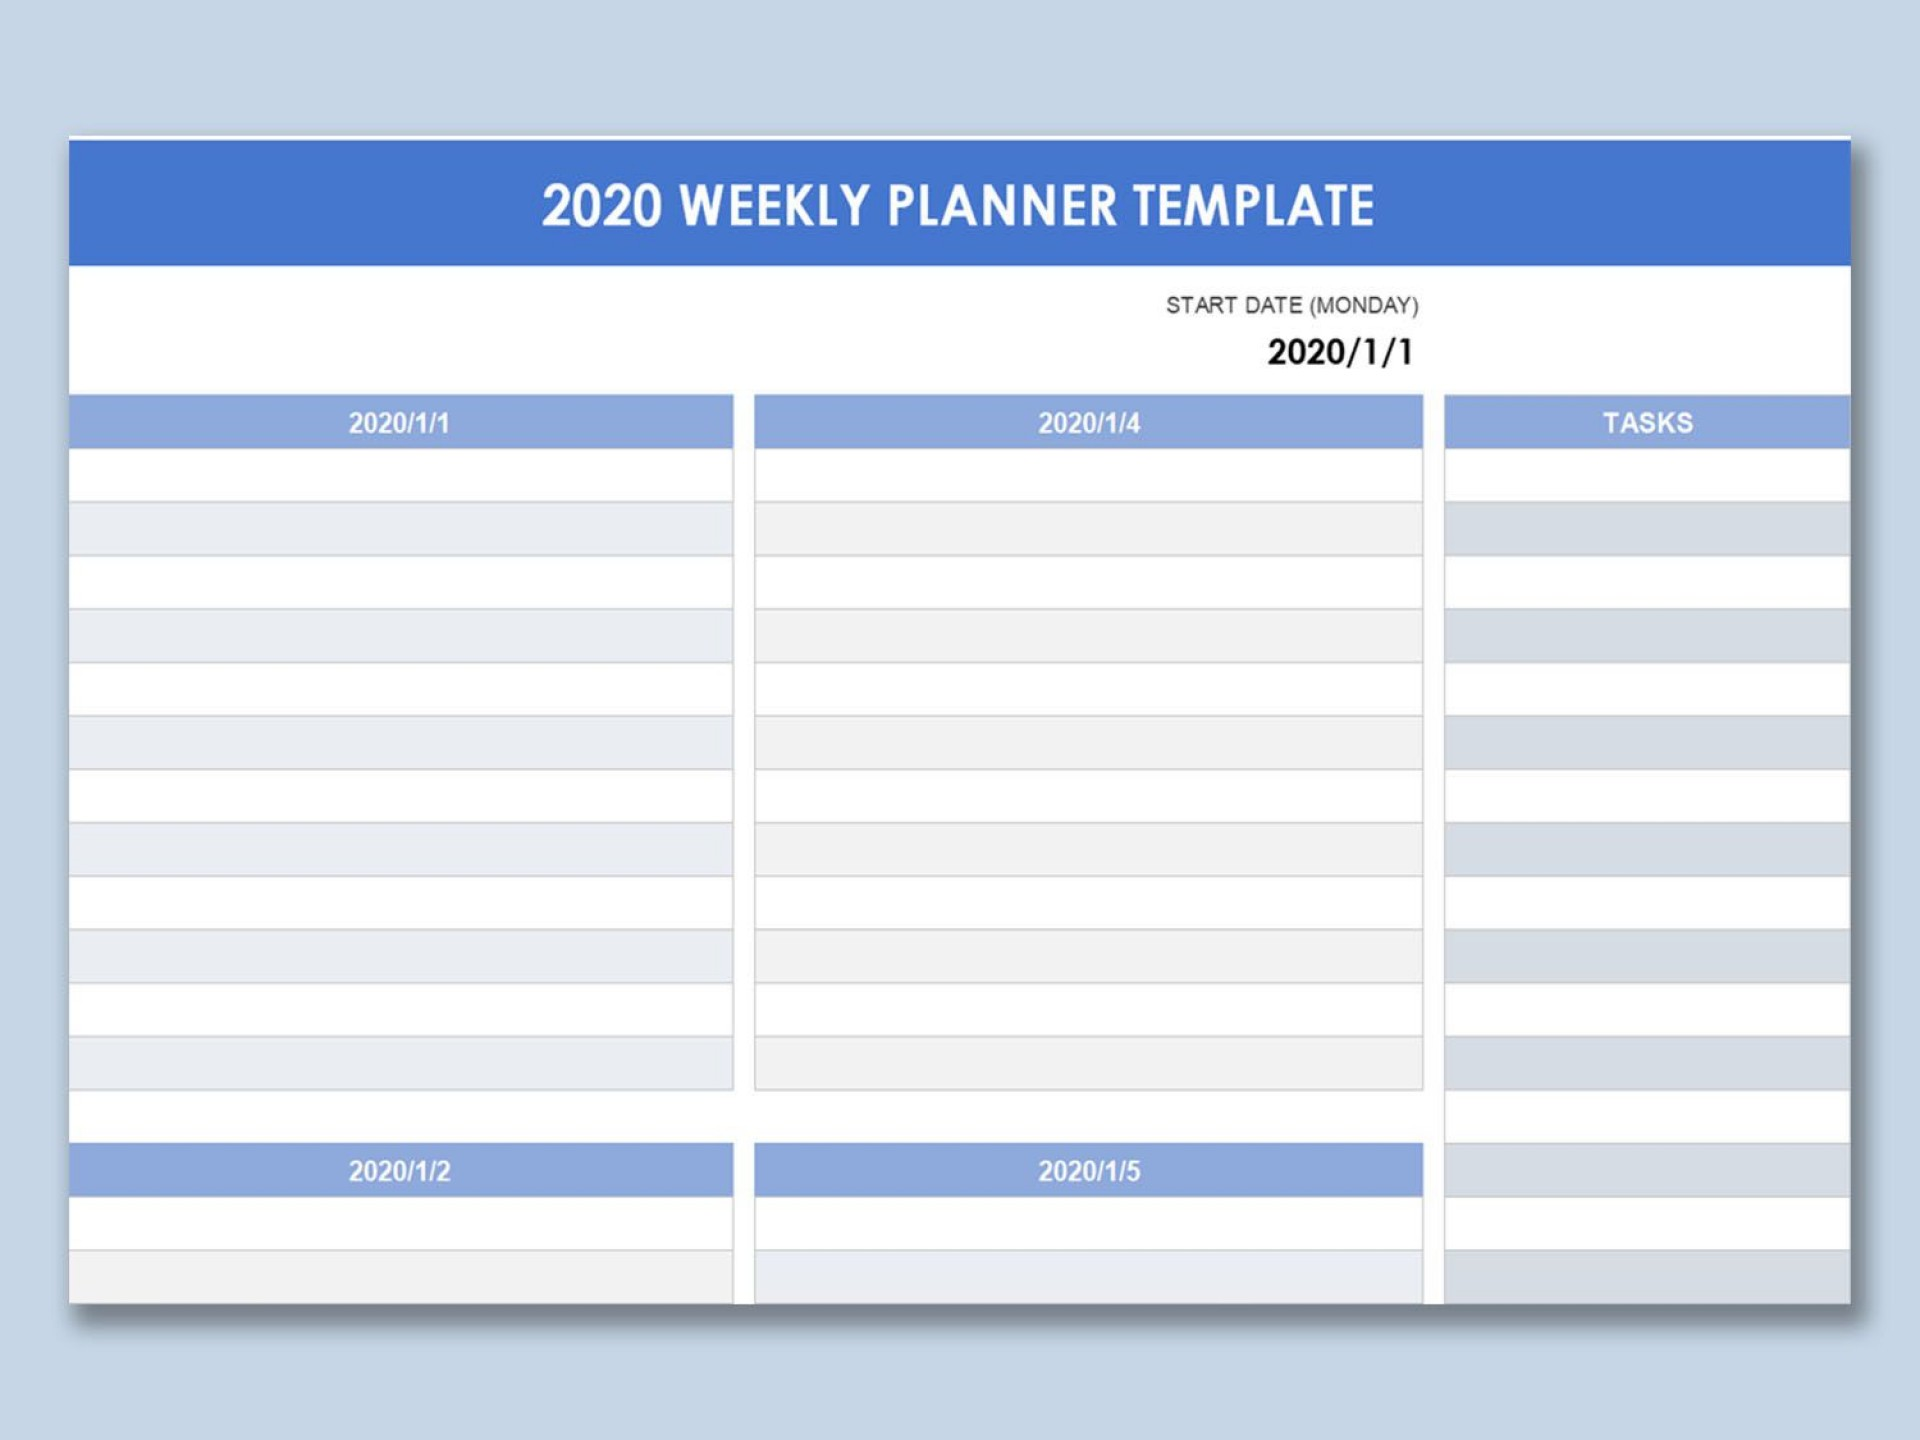 001 Awesome Excel Weekly Planner Template High Def  Meal Appointment Calendar Free1920